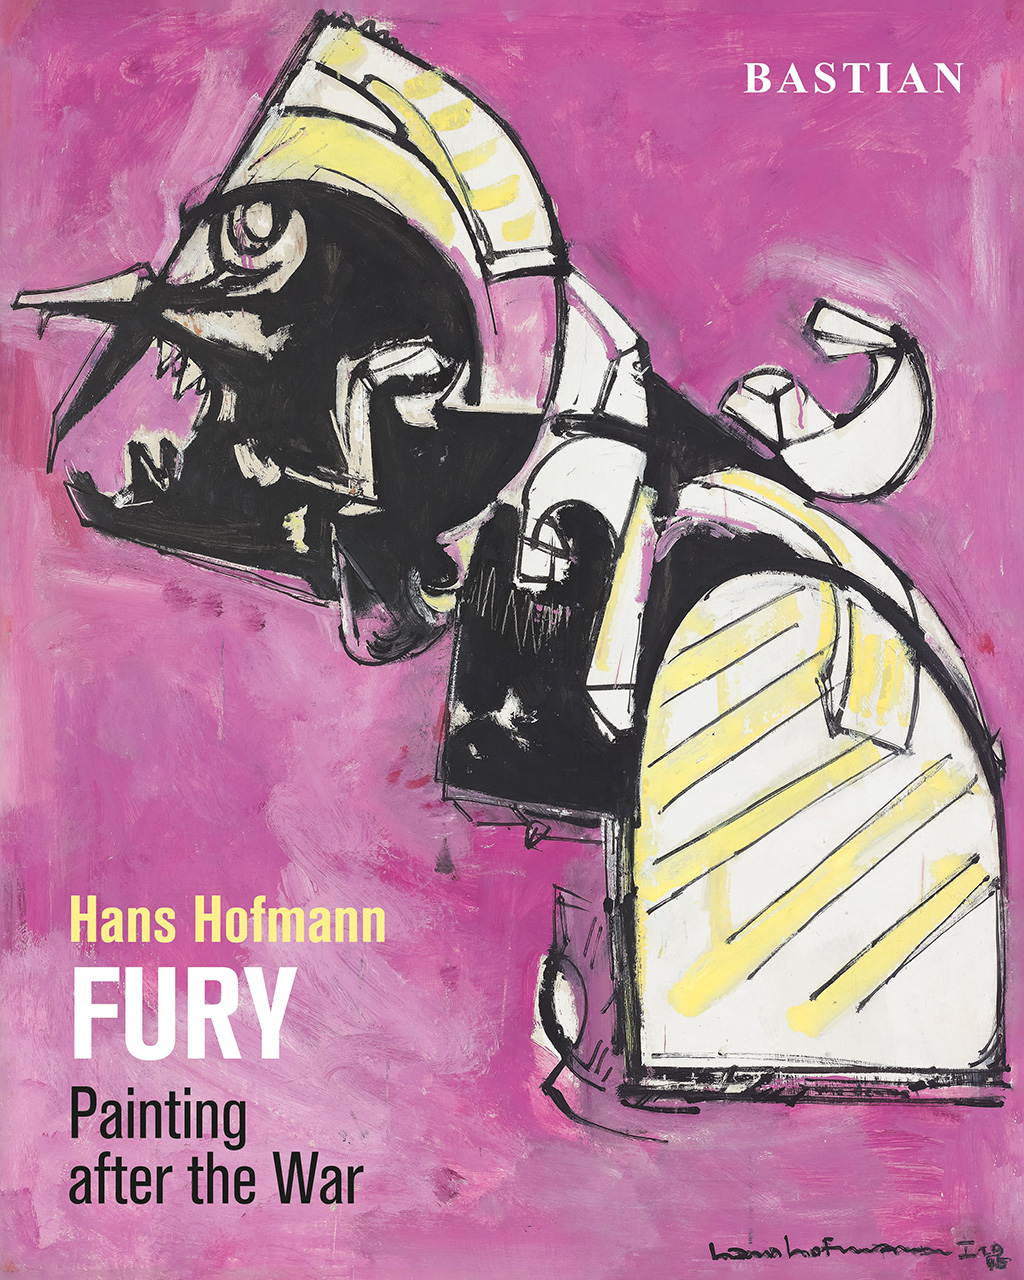 Hans Hofmann: FURY: Painting after the War